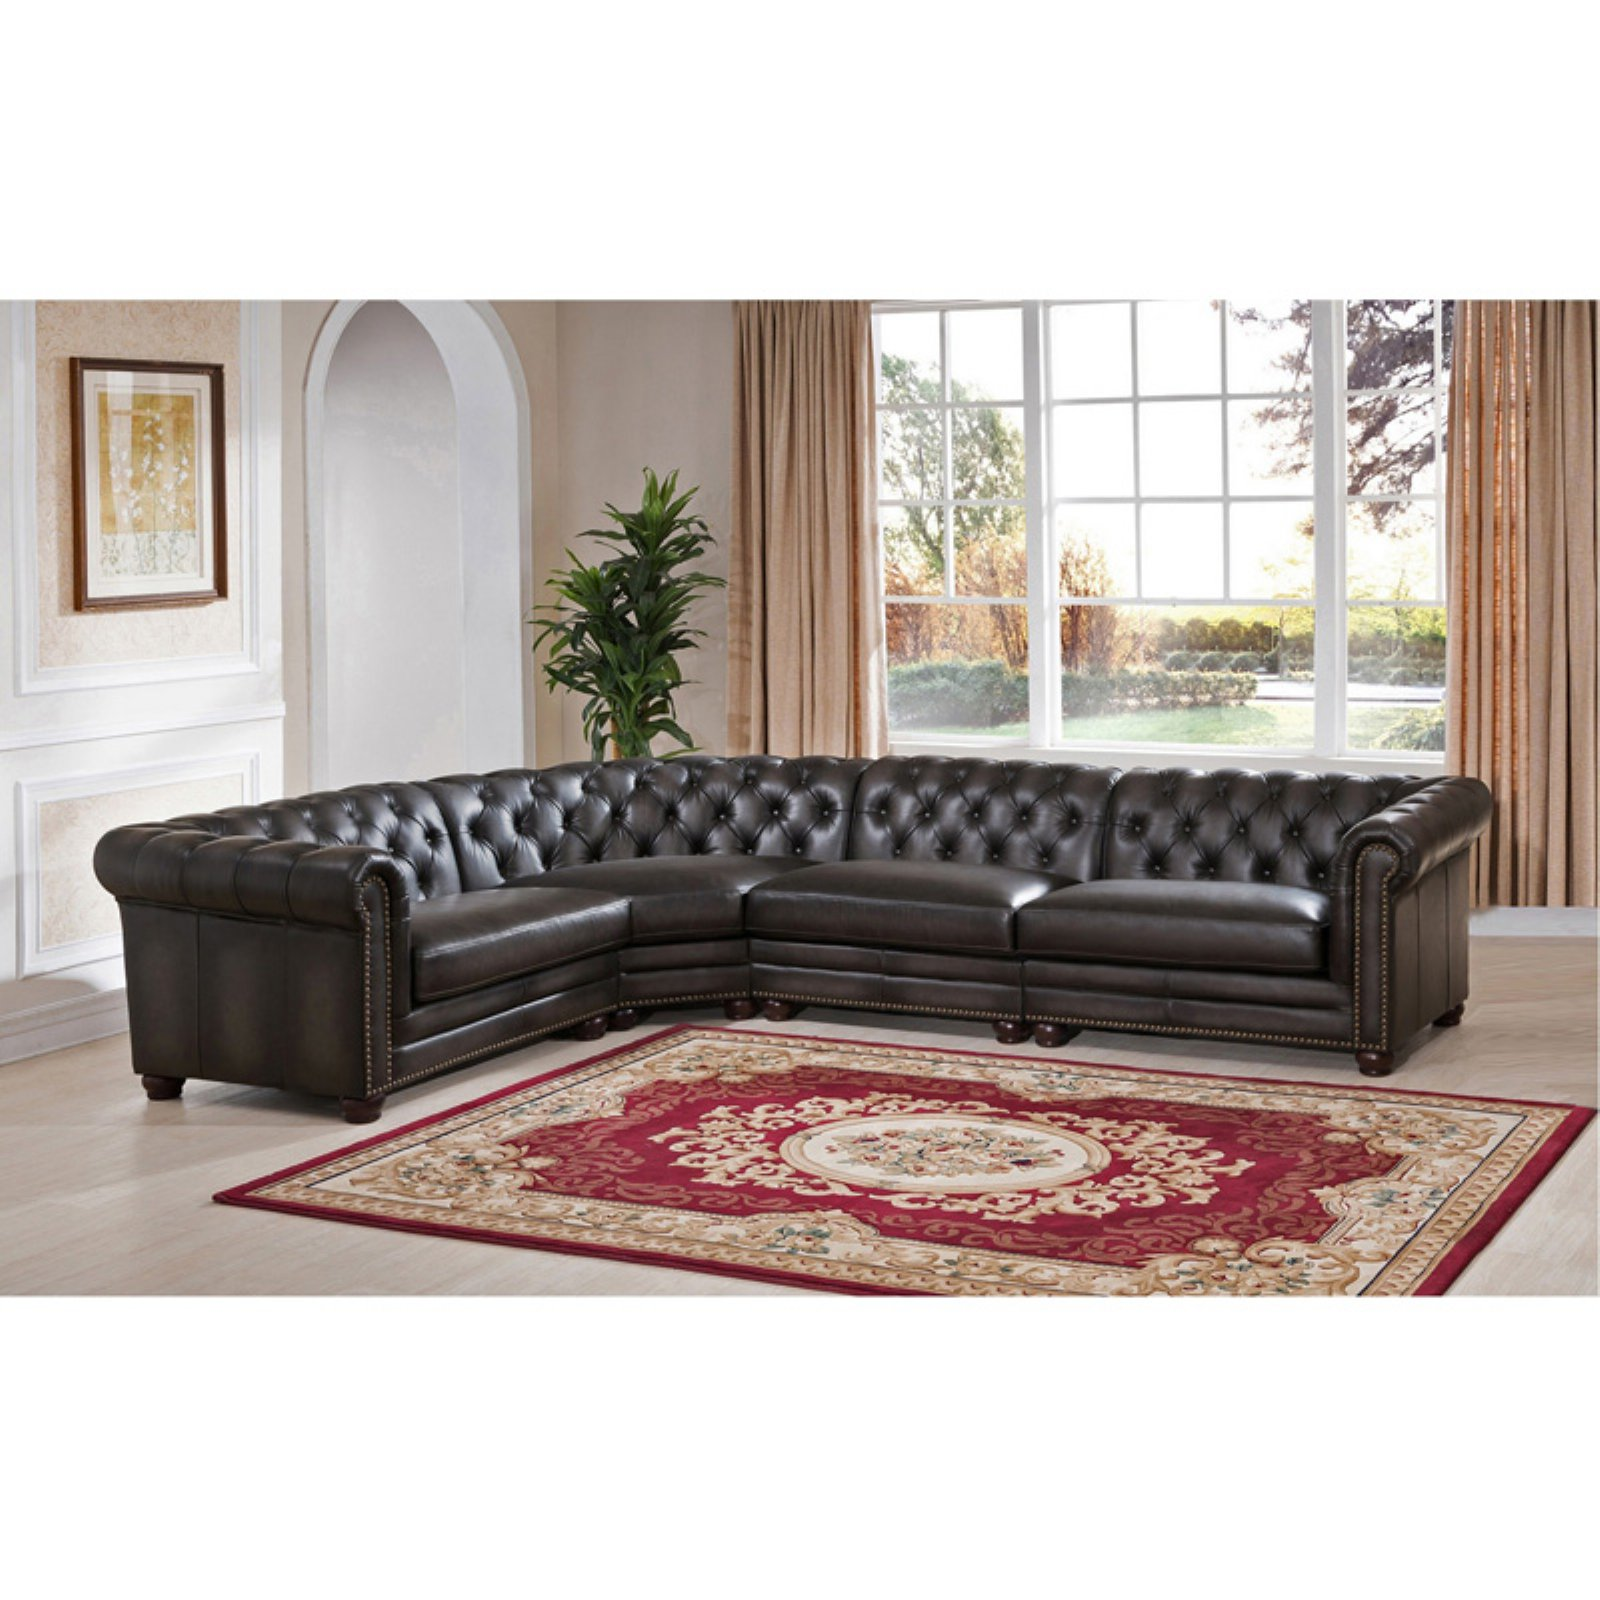 Amax Leather Madison Top Grain Leather 4 Piece Sectional